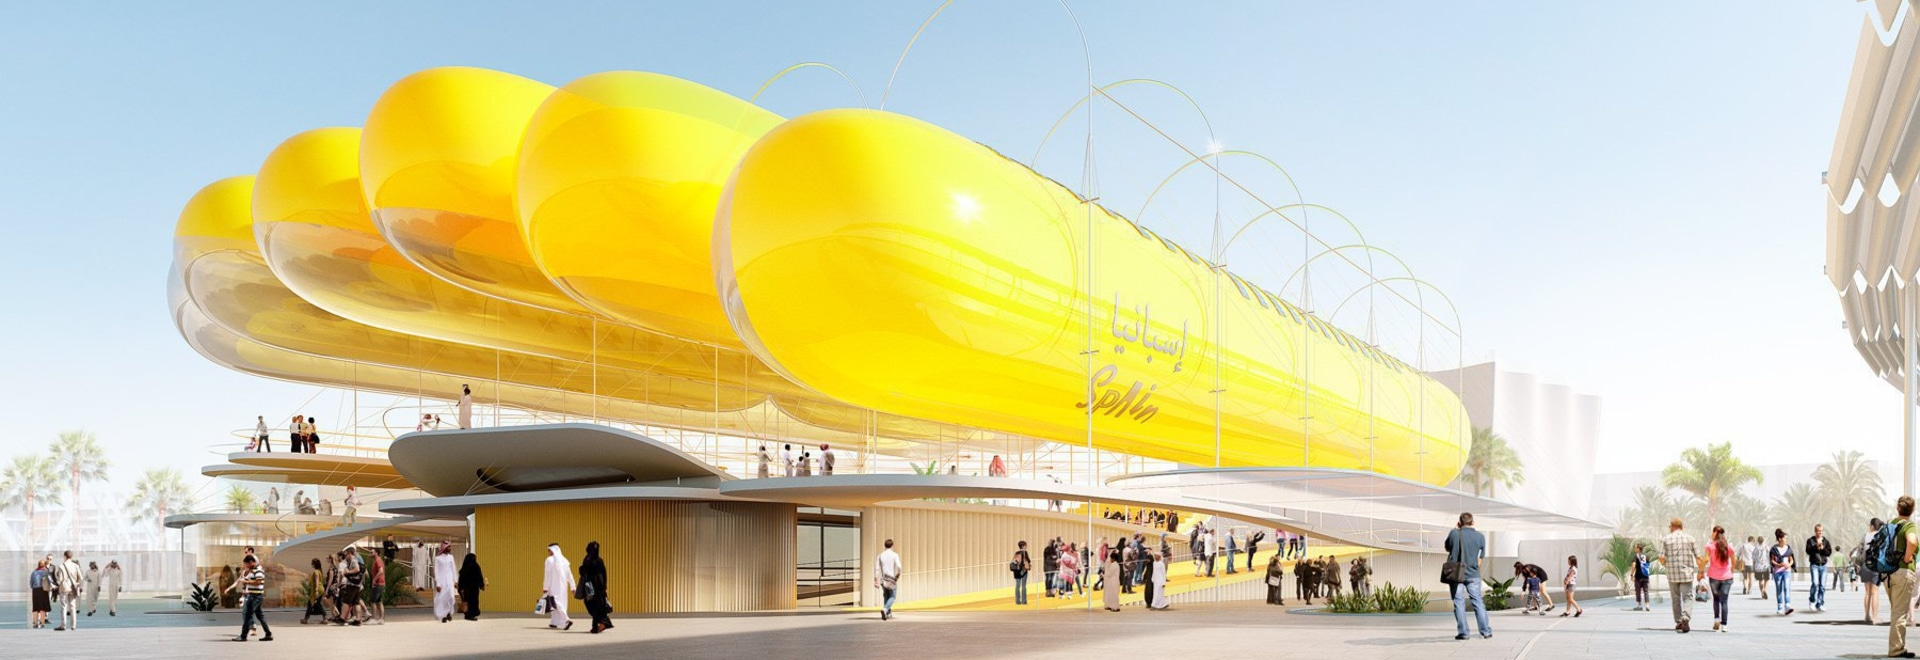 expo 2020: selgascano + FRPO propose canopy of inflatable cylinders for spanish pavilion